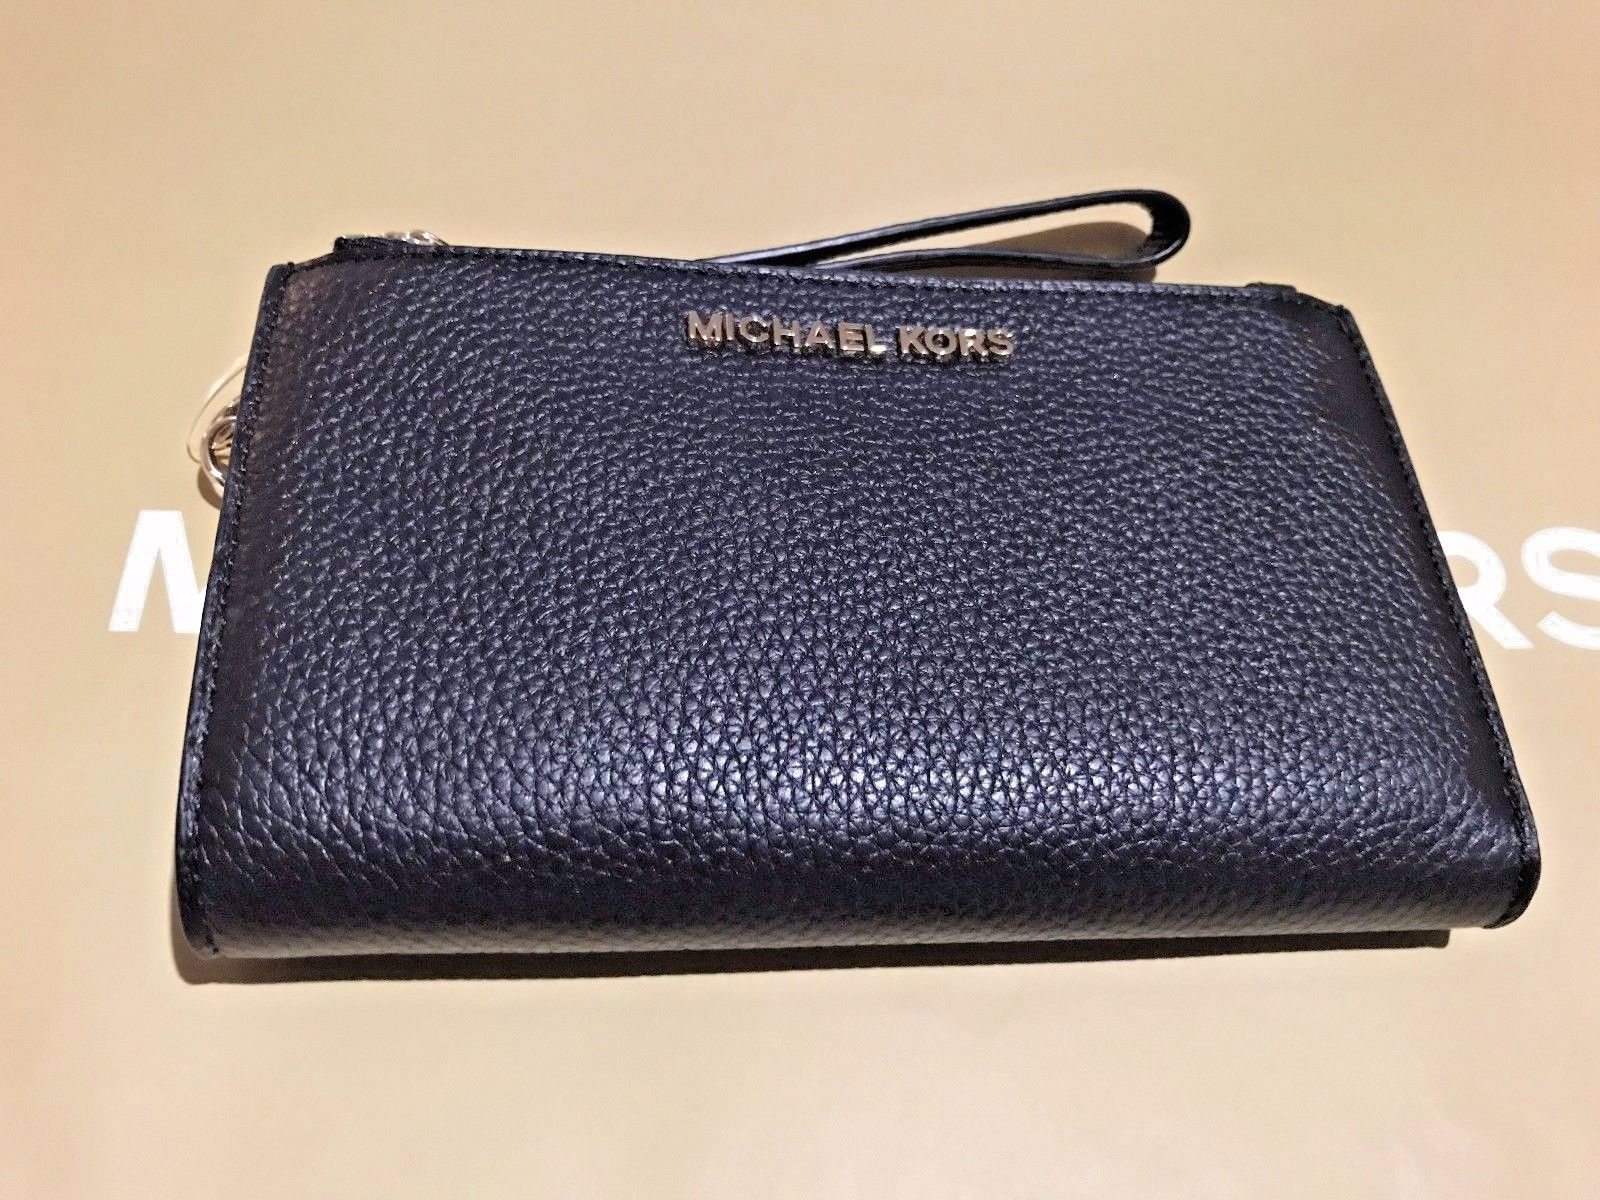 bf02b85c74c6 NWT Michael Kors Leather PVC Jet Set Travel Double Zip Wallet Wristlet 4  Colors